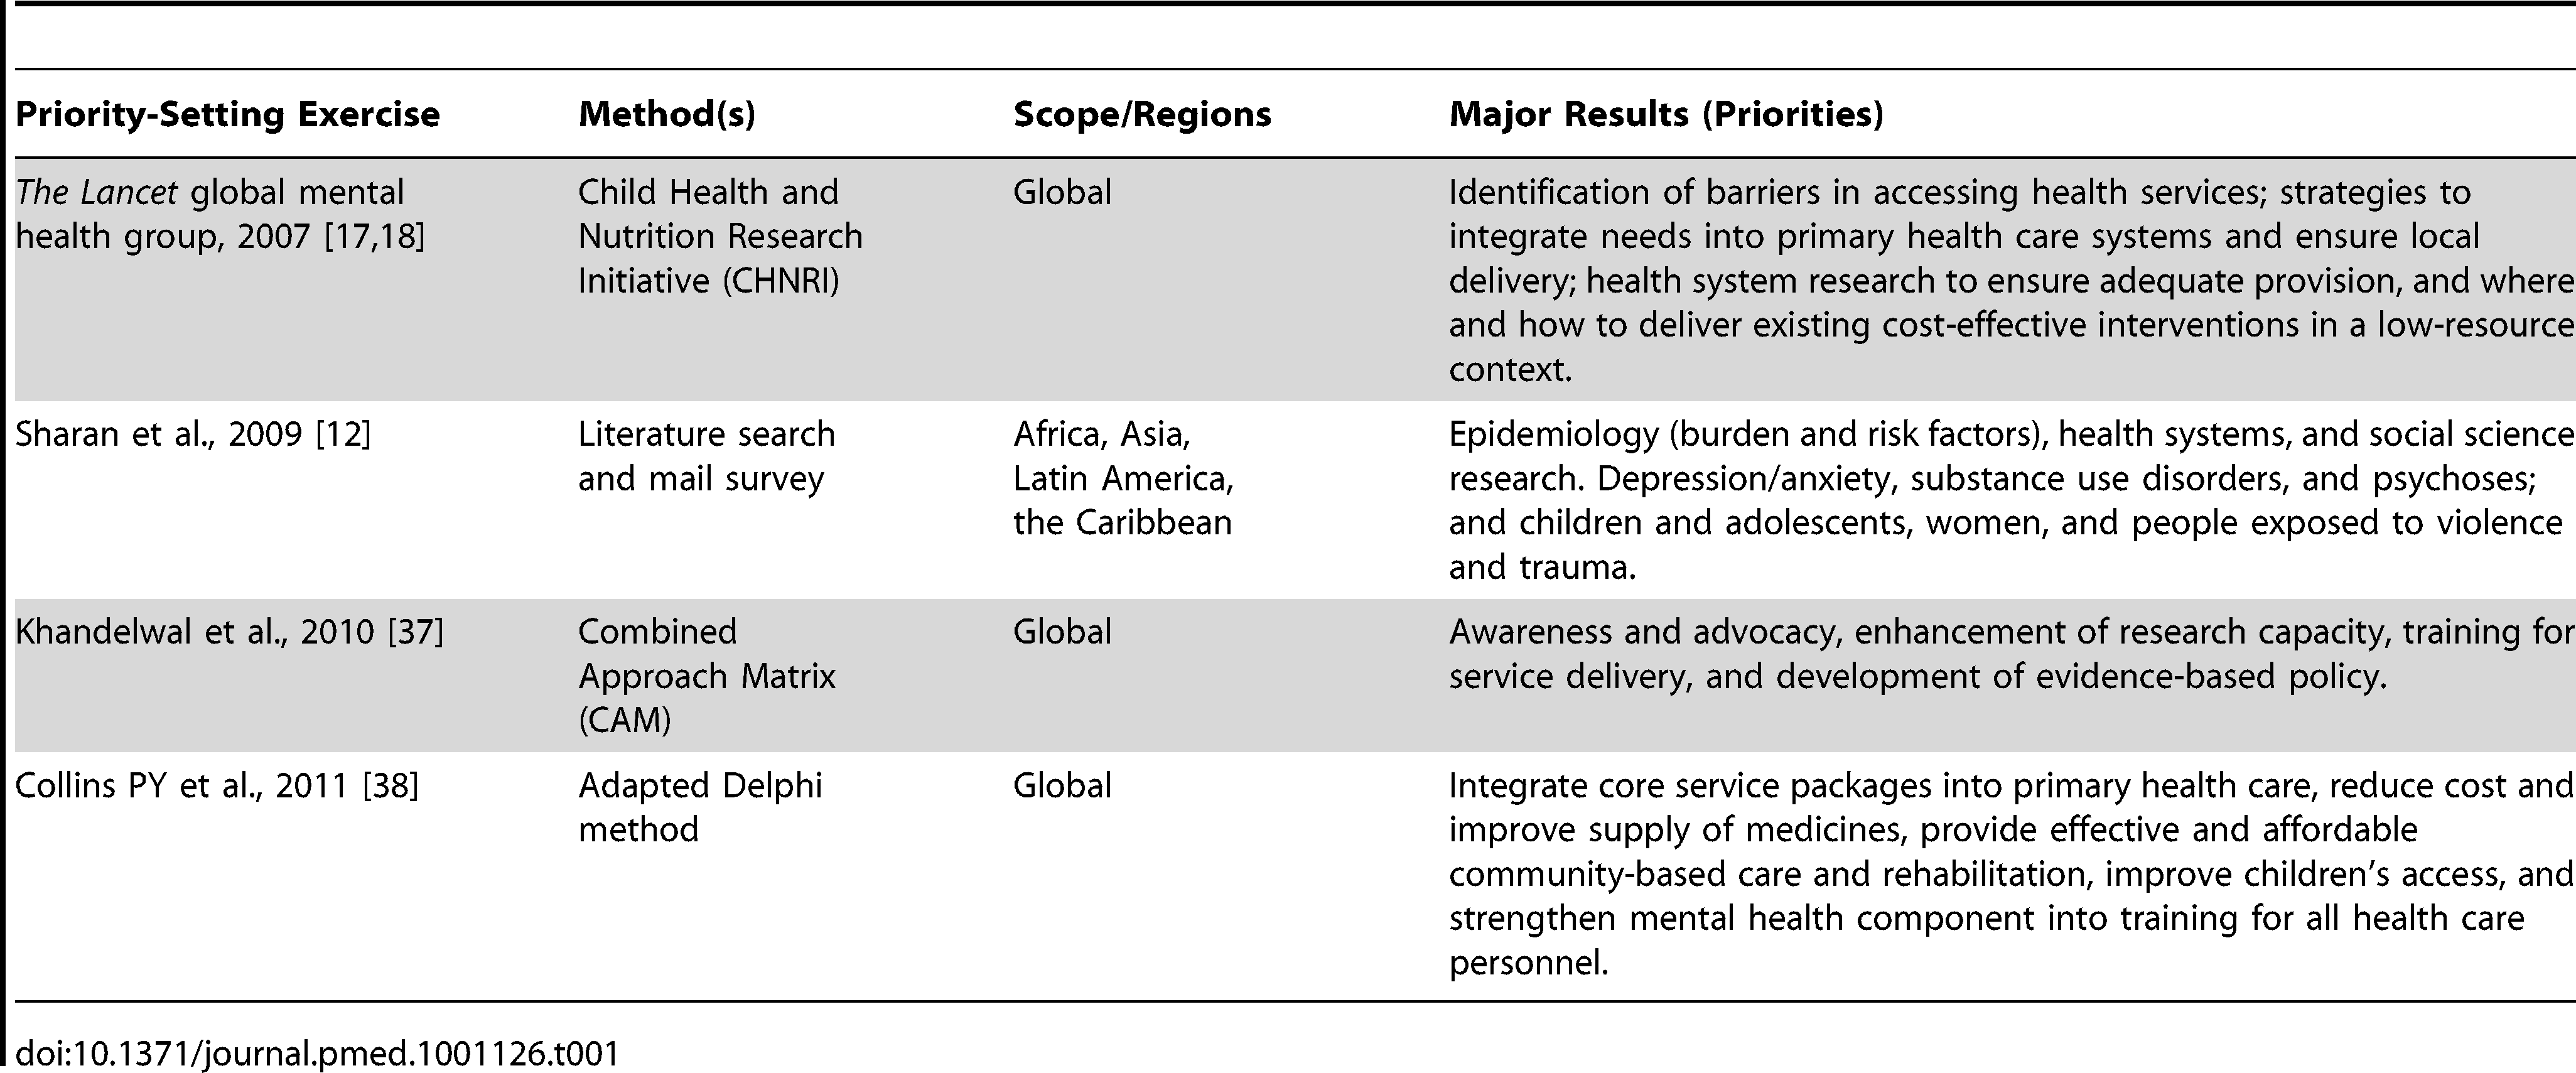 Major global mental health research priority-setting exercises.